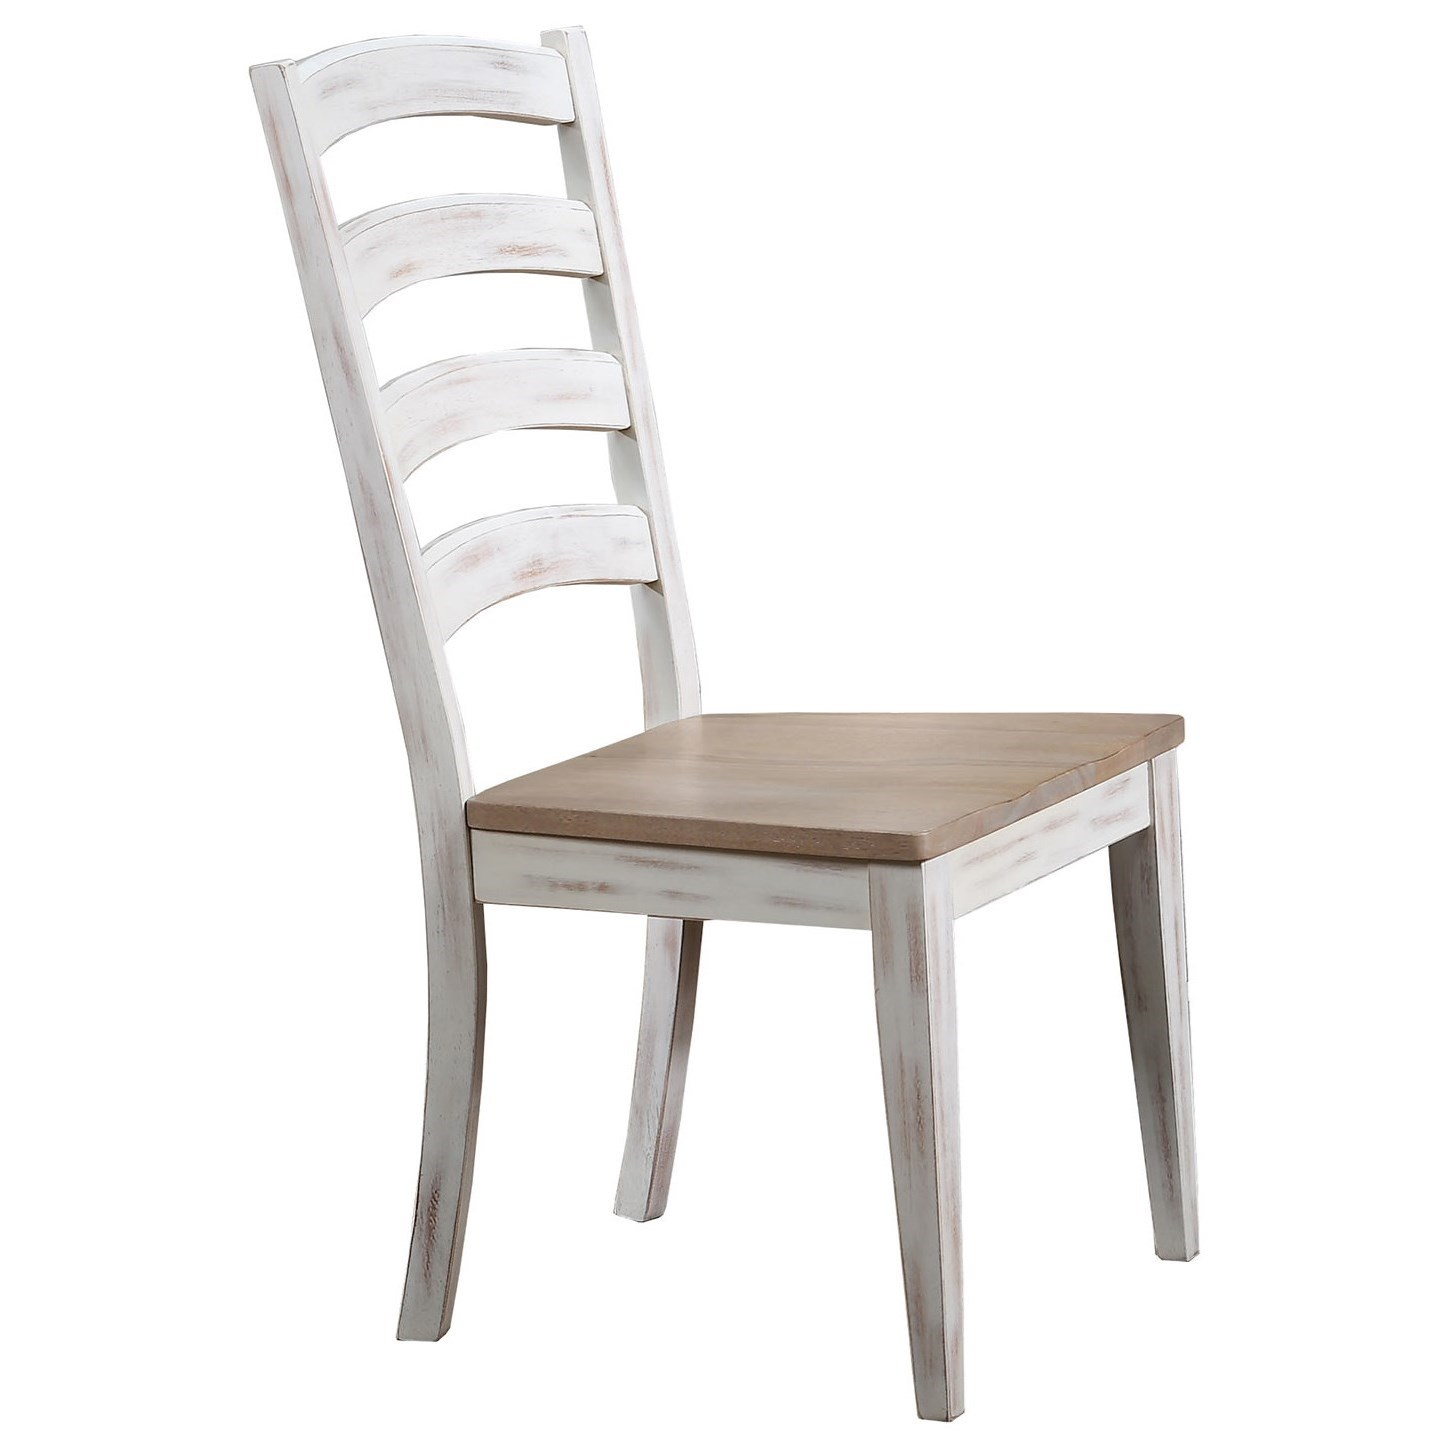 Prescott Arched Ladder Back Side Chair by Winners Only at Simply Home by Lindy's